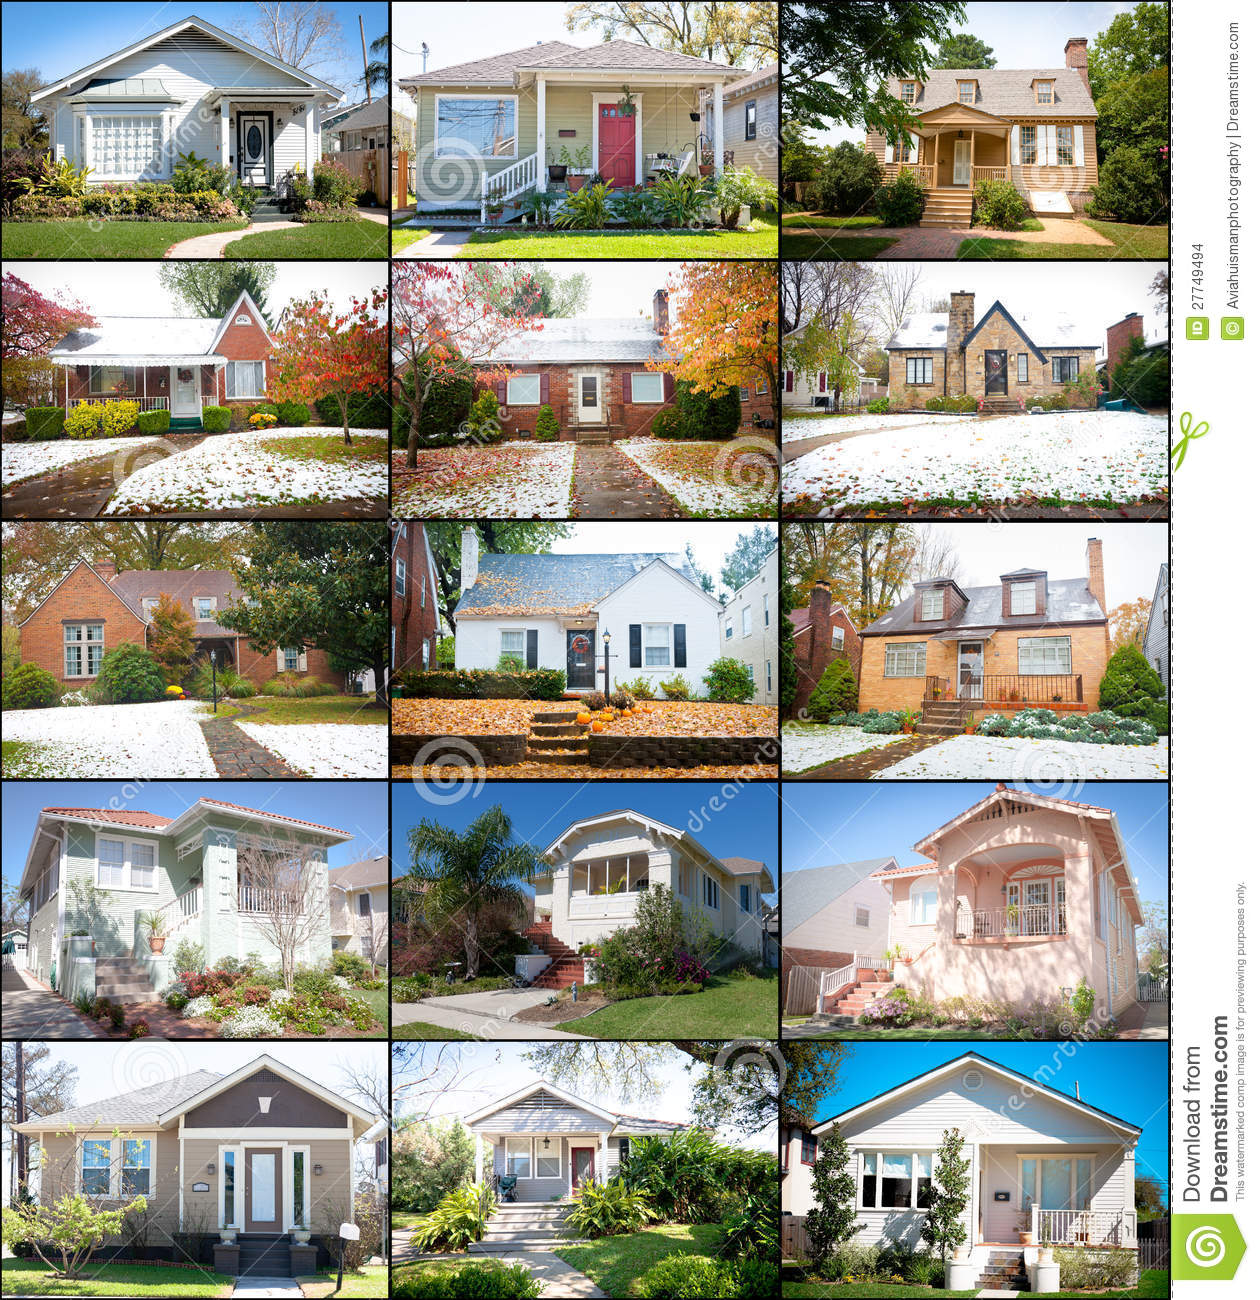 Stock Images Collage Cottage Homes Image27749494 on Modern Home Interior Design Architecture